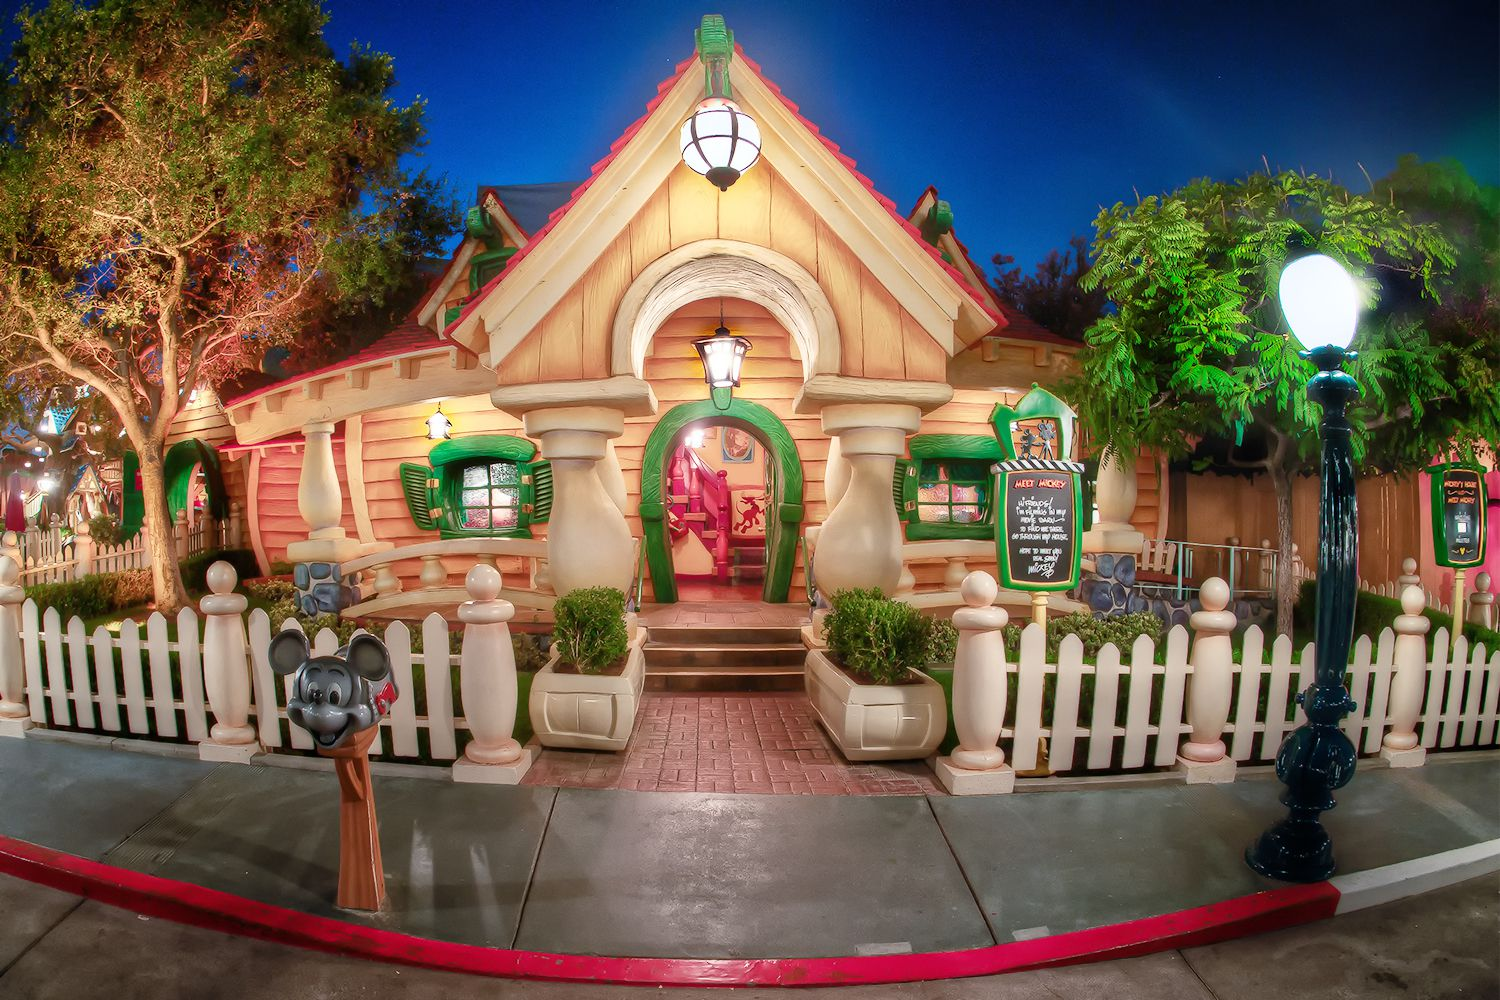 Mickey's House at Disneyland: Things You Need to Know